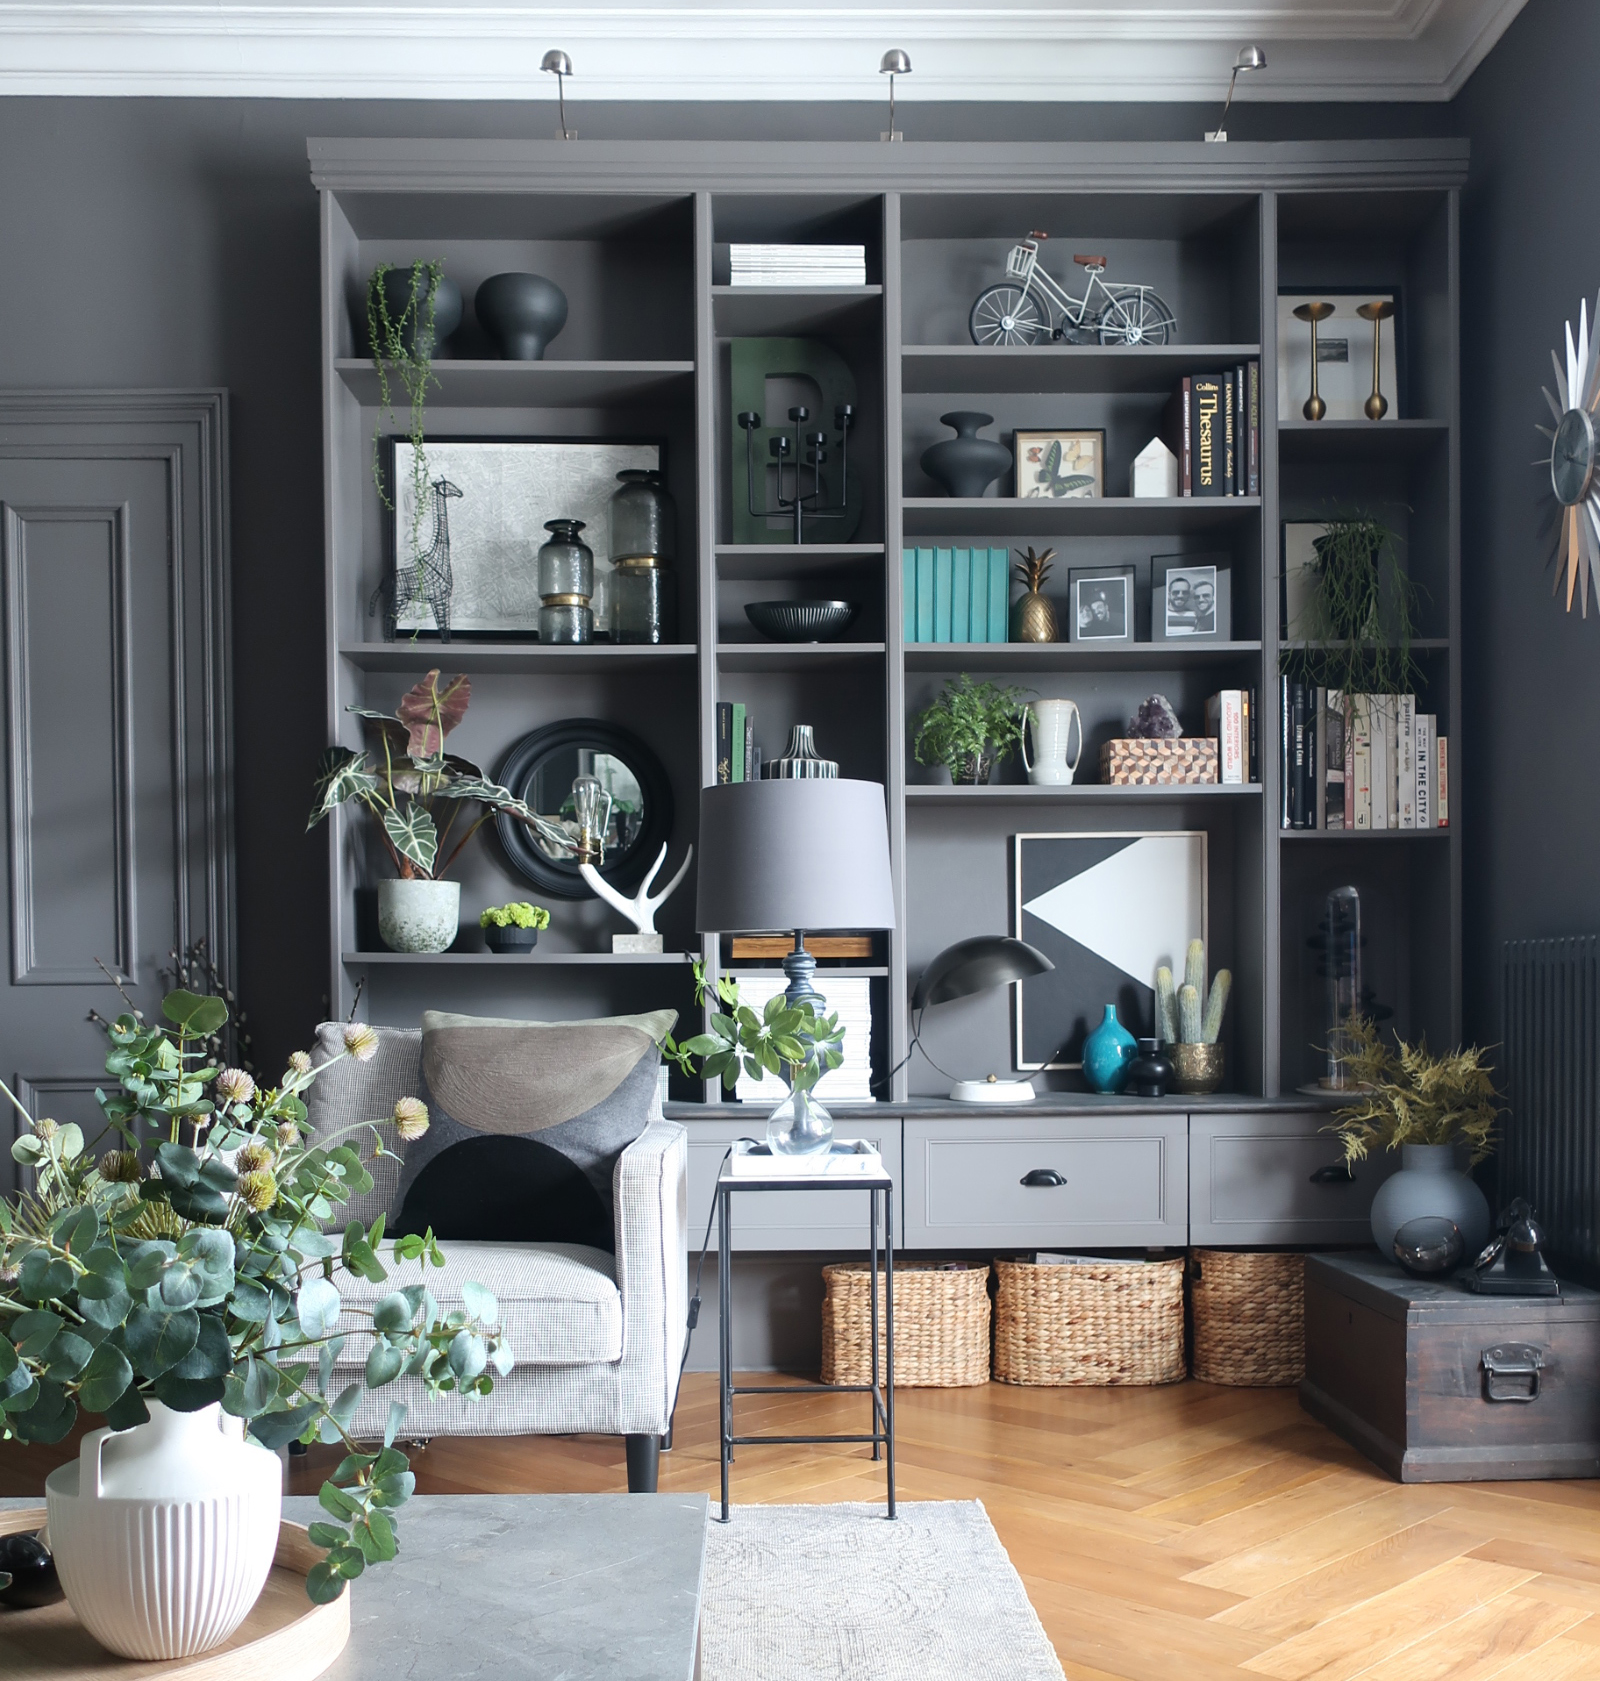 Nicola Broughton The Girl With The Green Sofa Blog Homemalcolm Begg Of Design Sixty Nine A Renovation Of A Victorian Home